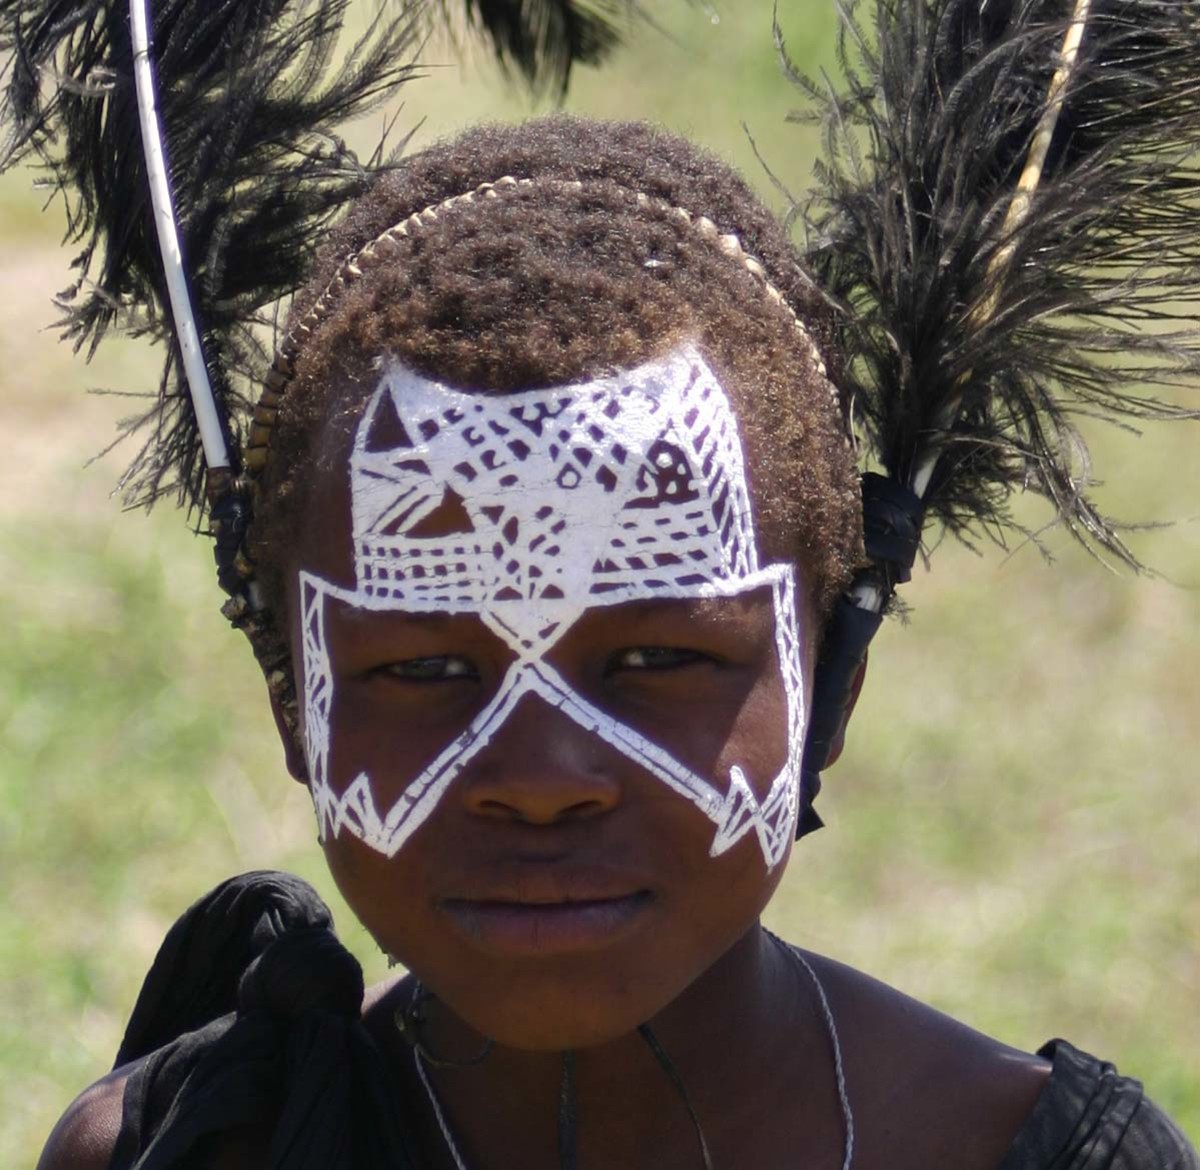 many tribes in parts of Africa include body painting as a tradition and custom.